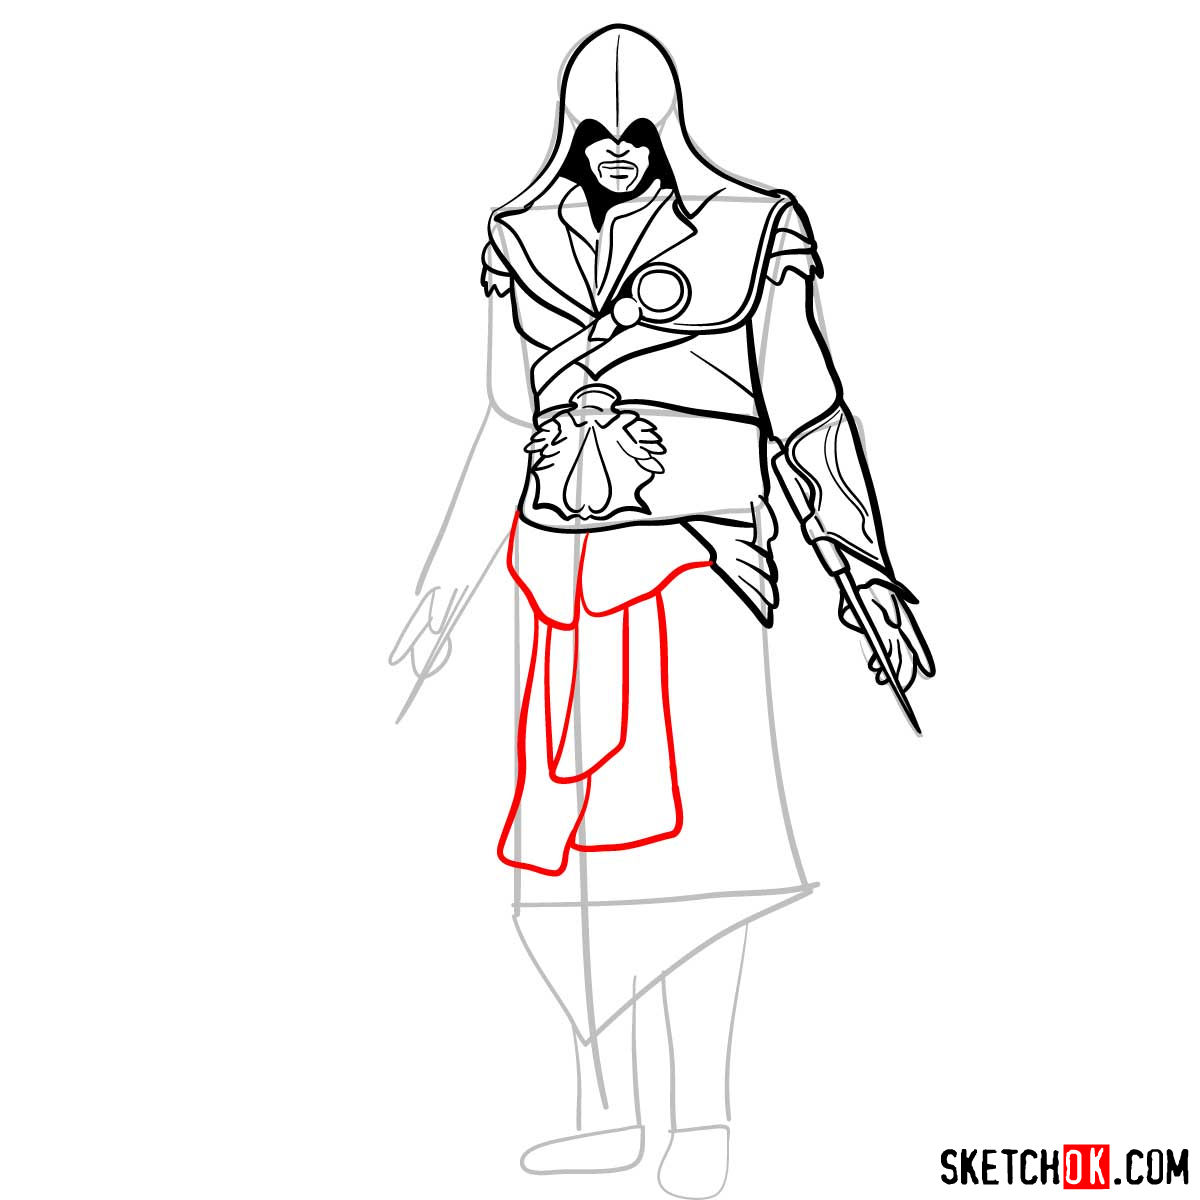 How to draw an Assassin from Assassin's Creed game - step 12